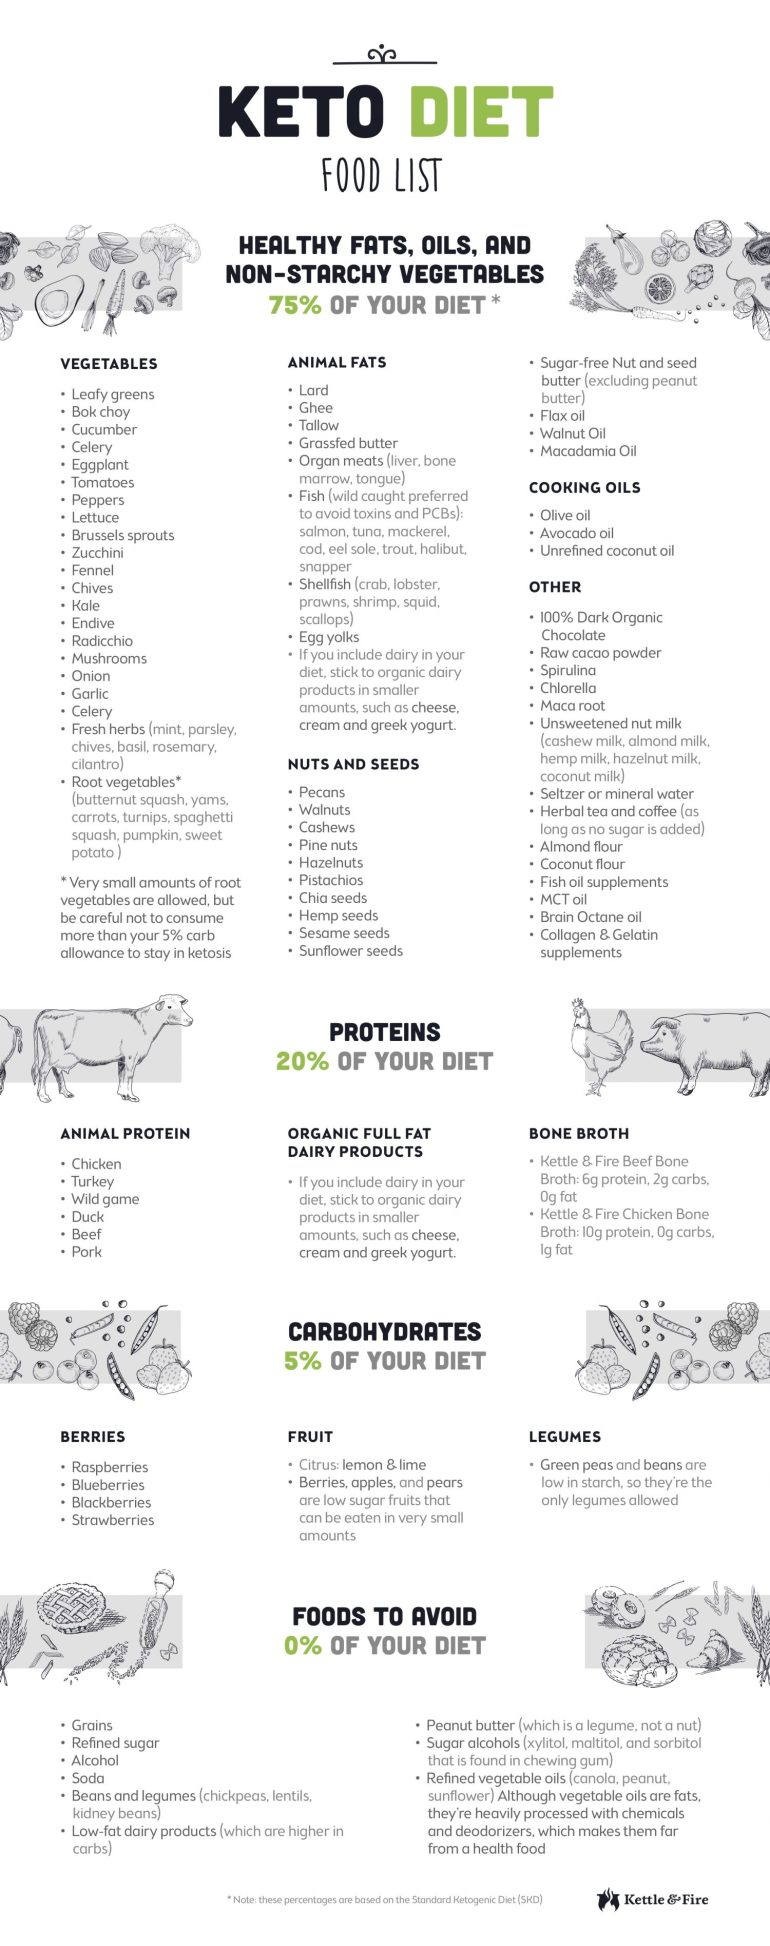 The Ultimate Keto Diet Beginner's Guide & Grocery List - Let's Do Keto Together!